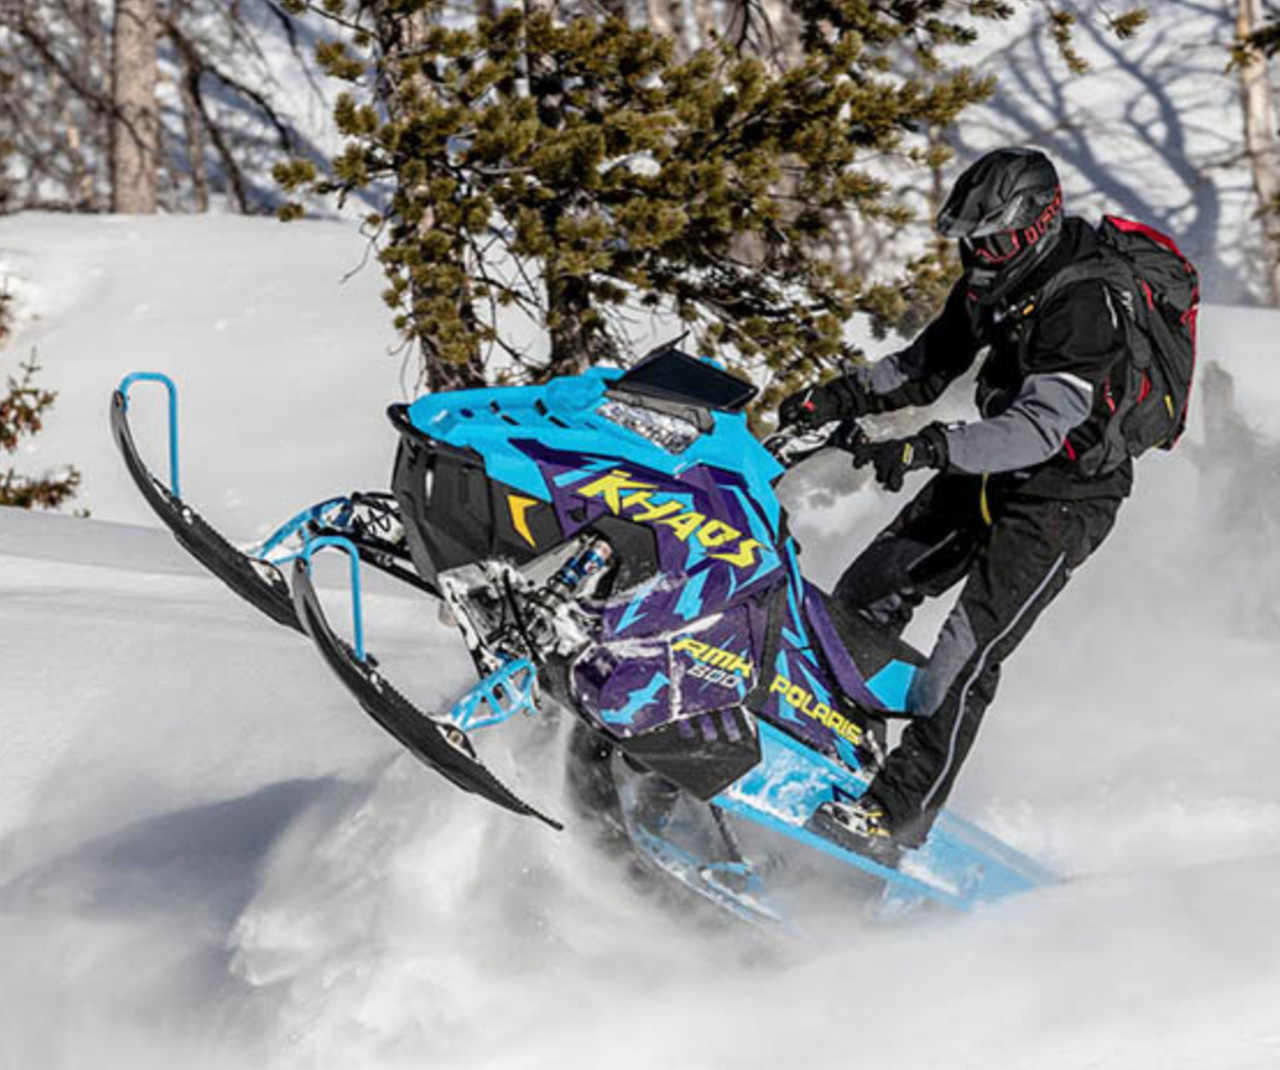 Polaris Snowmobiles in action